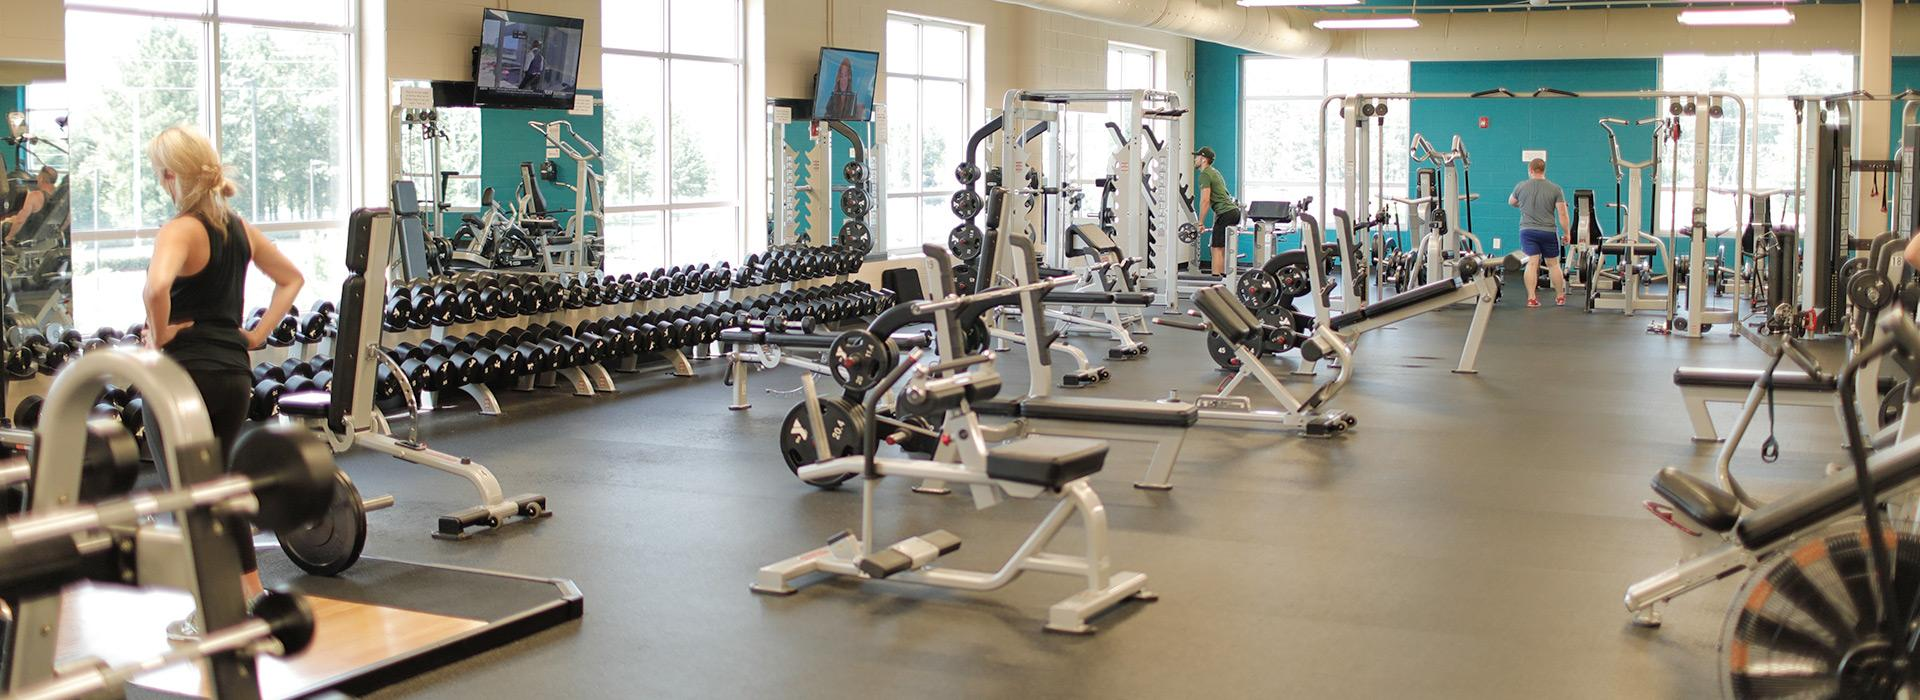 Princess Anne Family YMCA weightroom